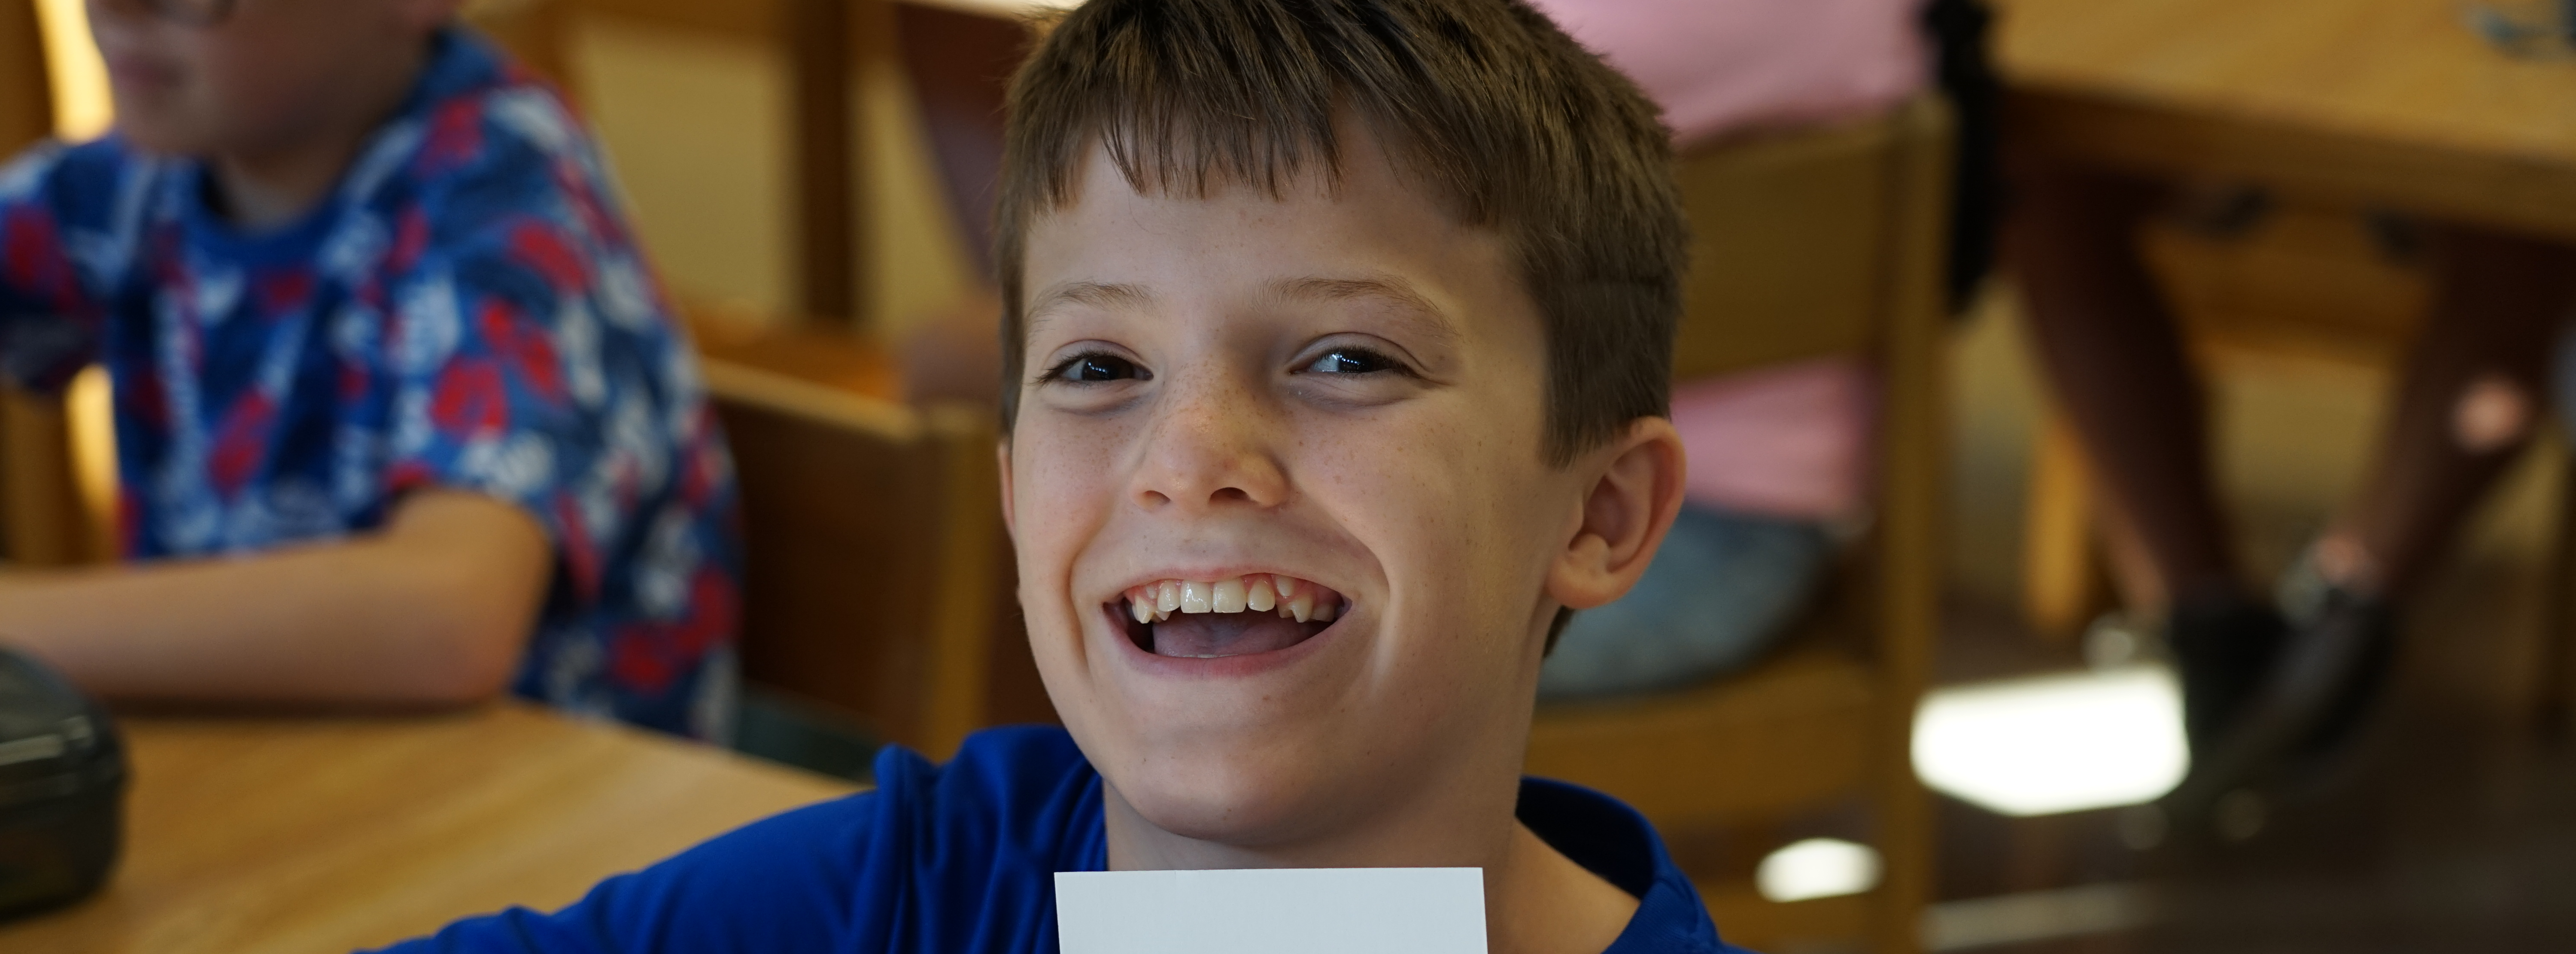 Boy in library posing and smiling at camera